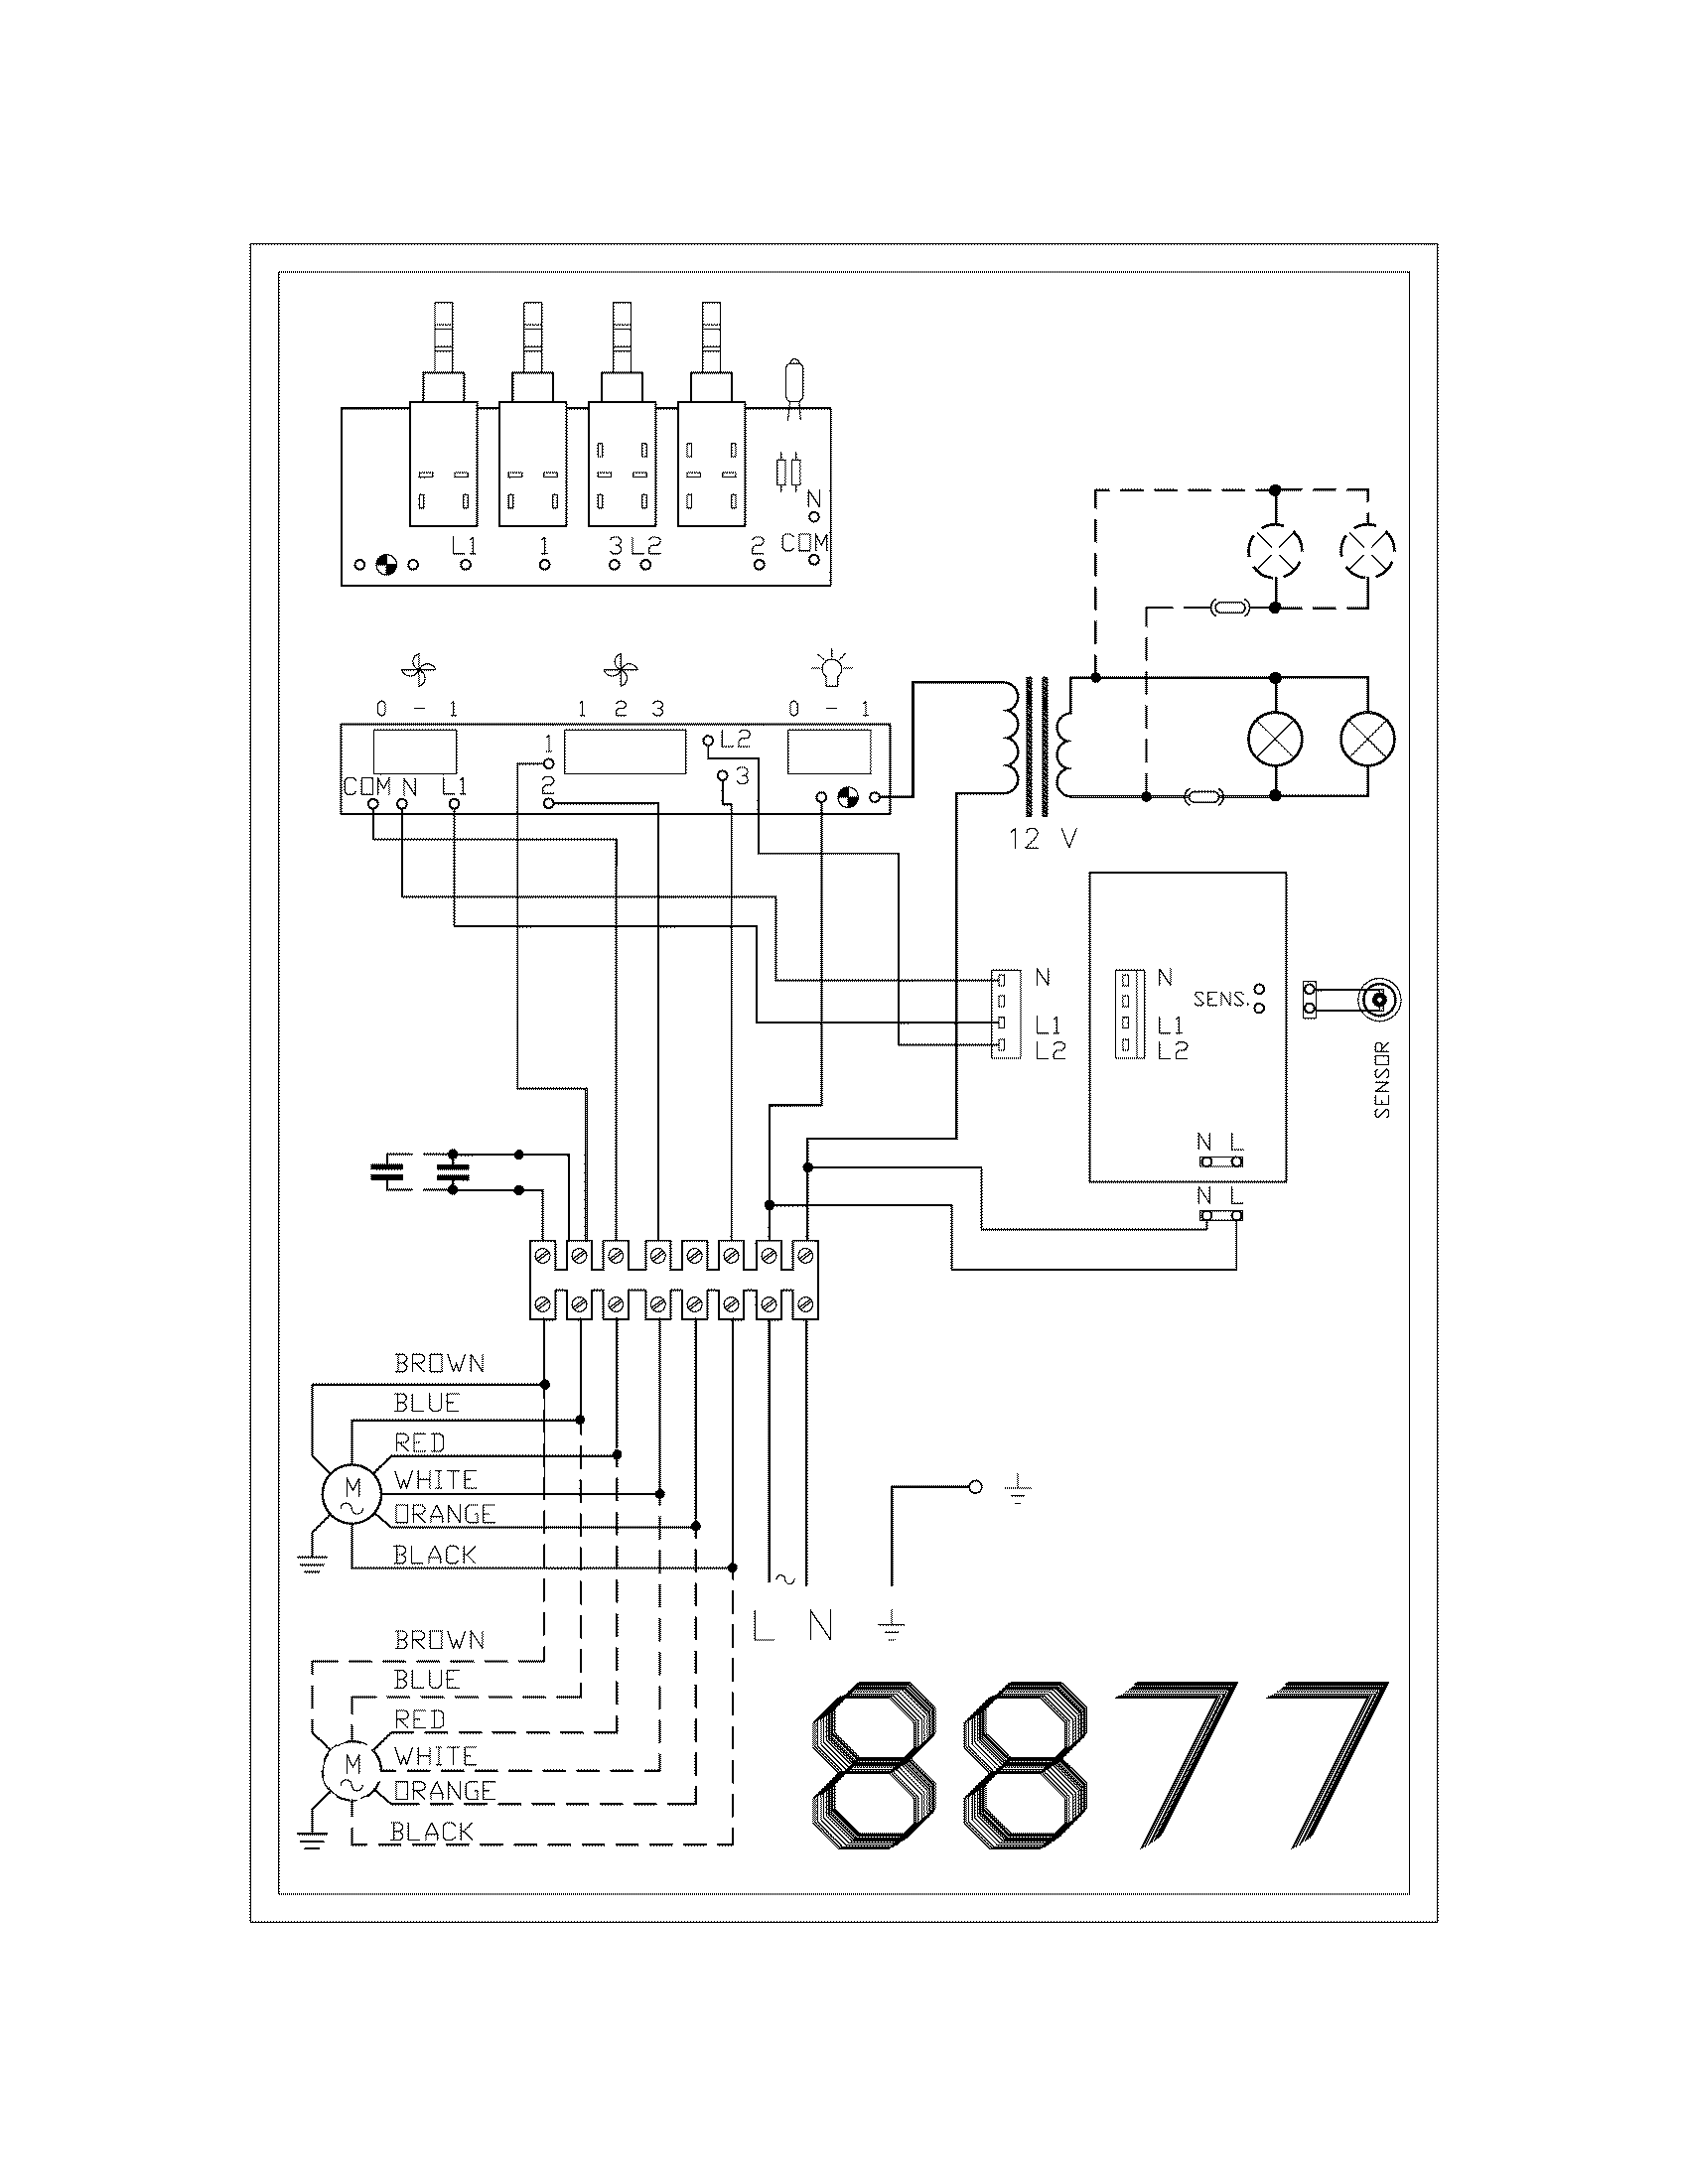 Honeywell R8184g Primary Control Wiring Diagram Honeywell